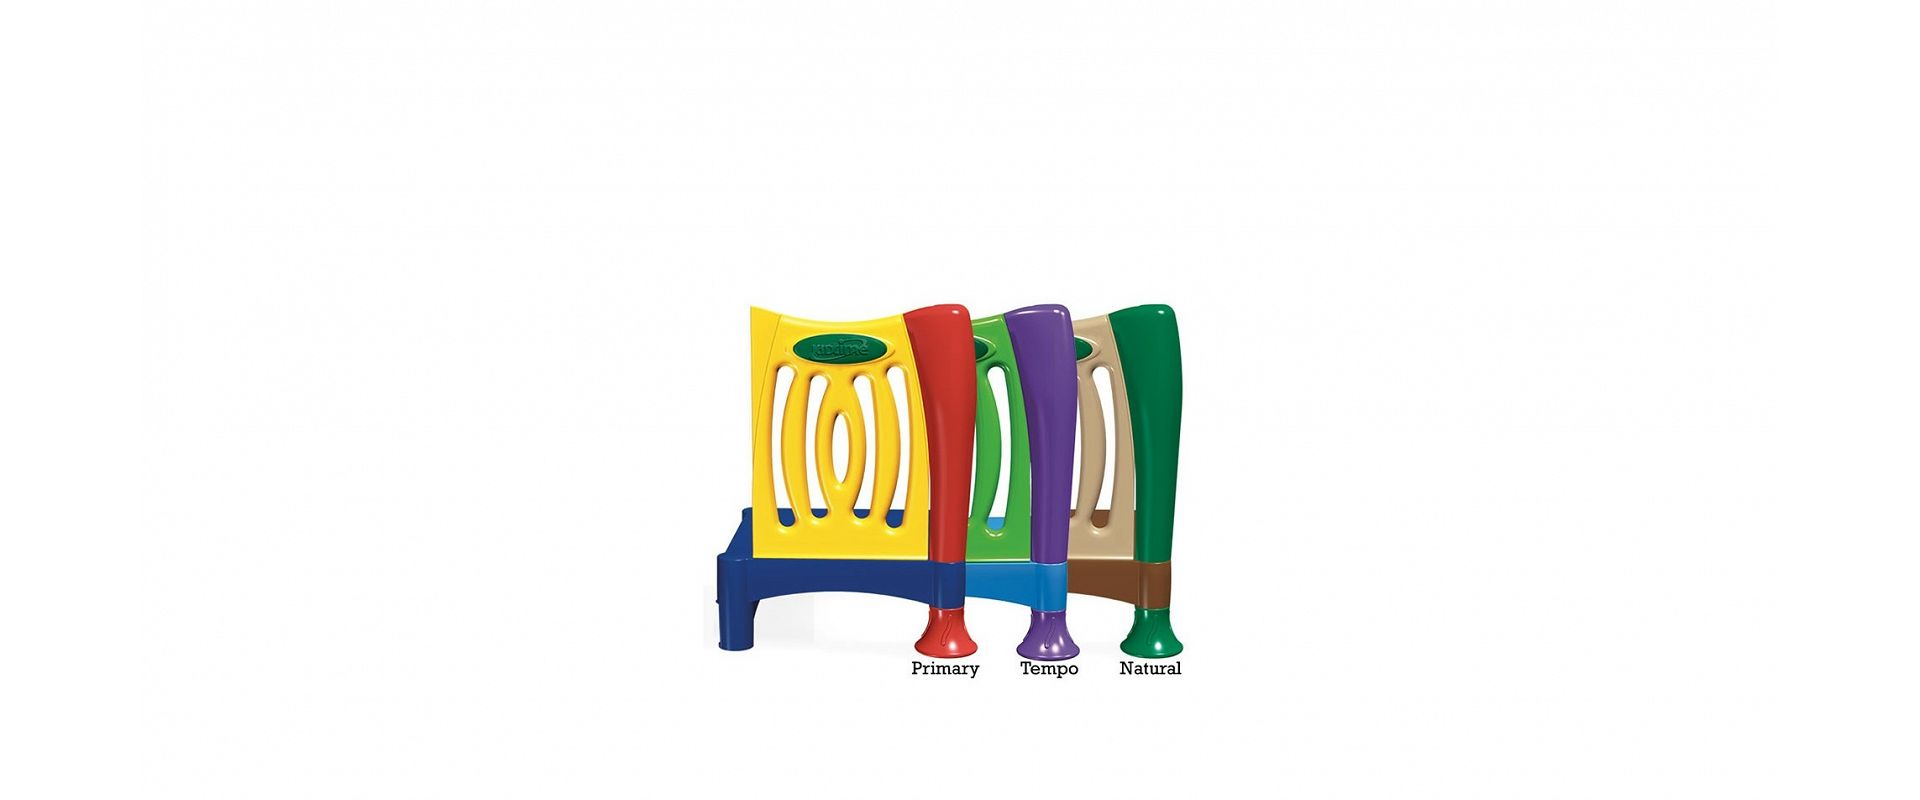 Toddler Playground 2 is a great playground for toddlers to learn life skills.